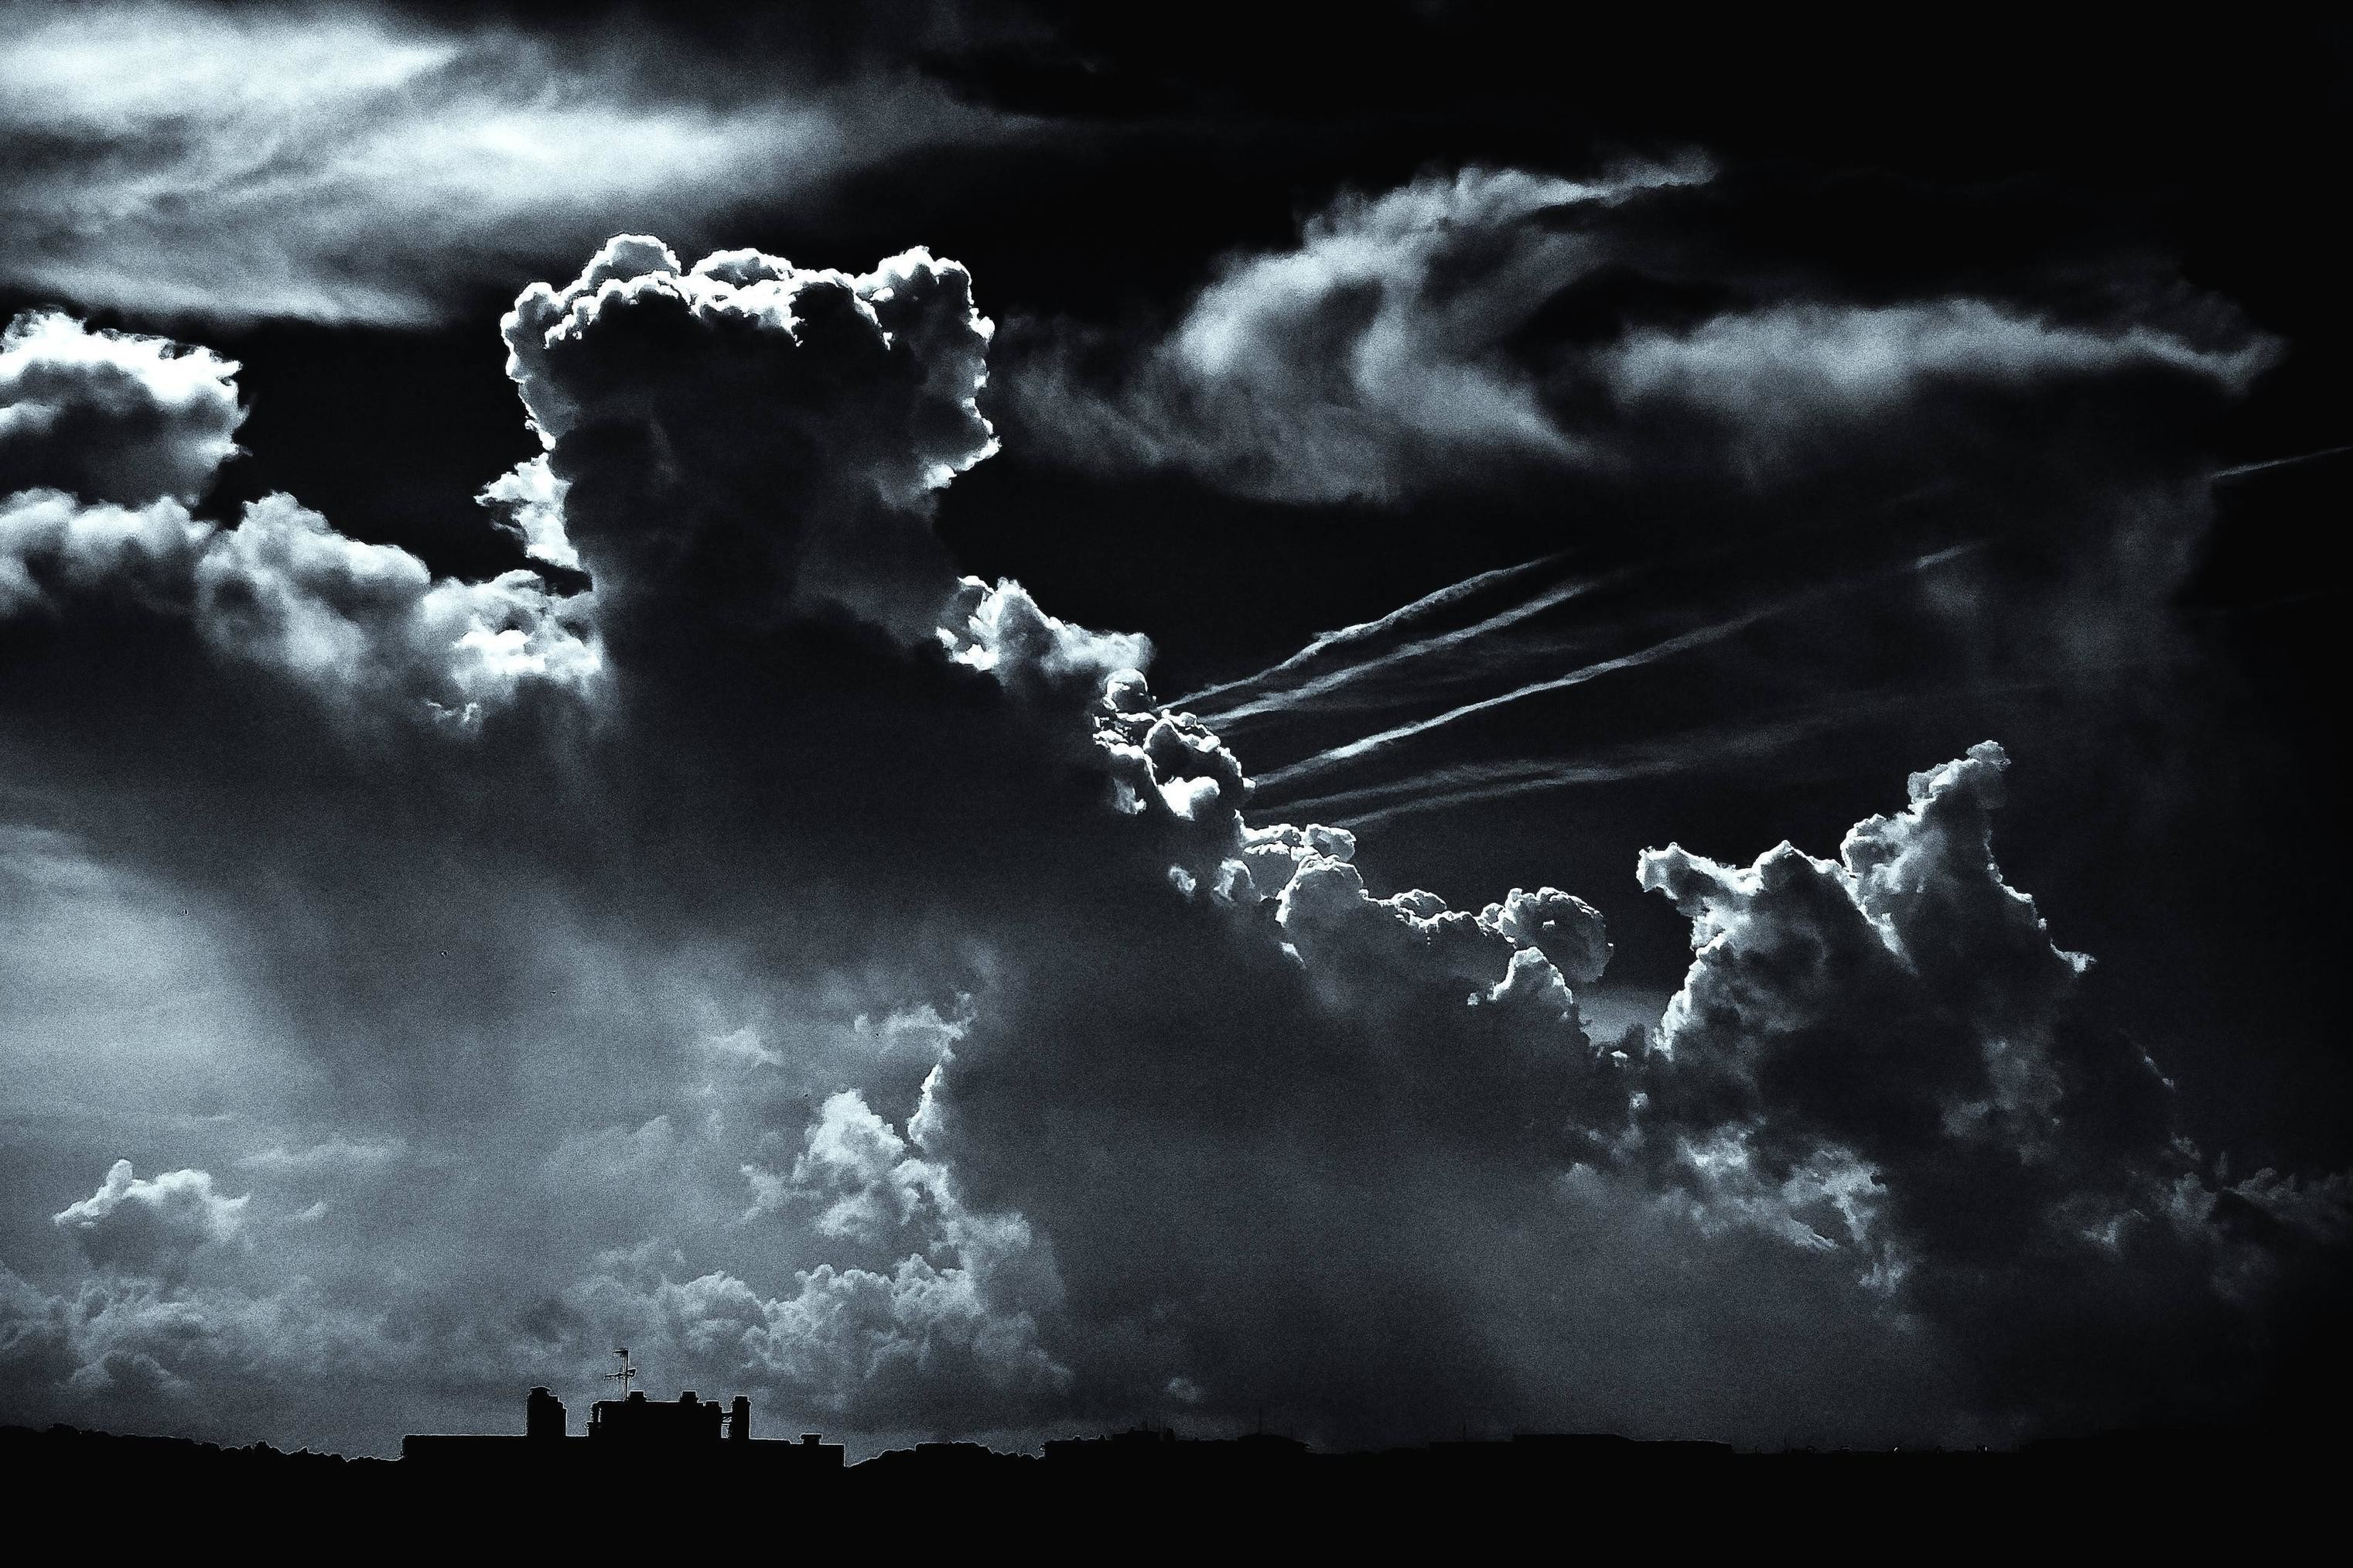 Res: 3042x2027, Wallpapers For > Dark Clouds Wallpaper Hd